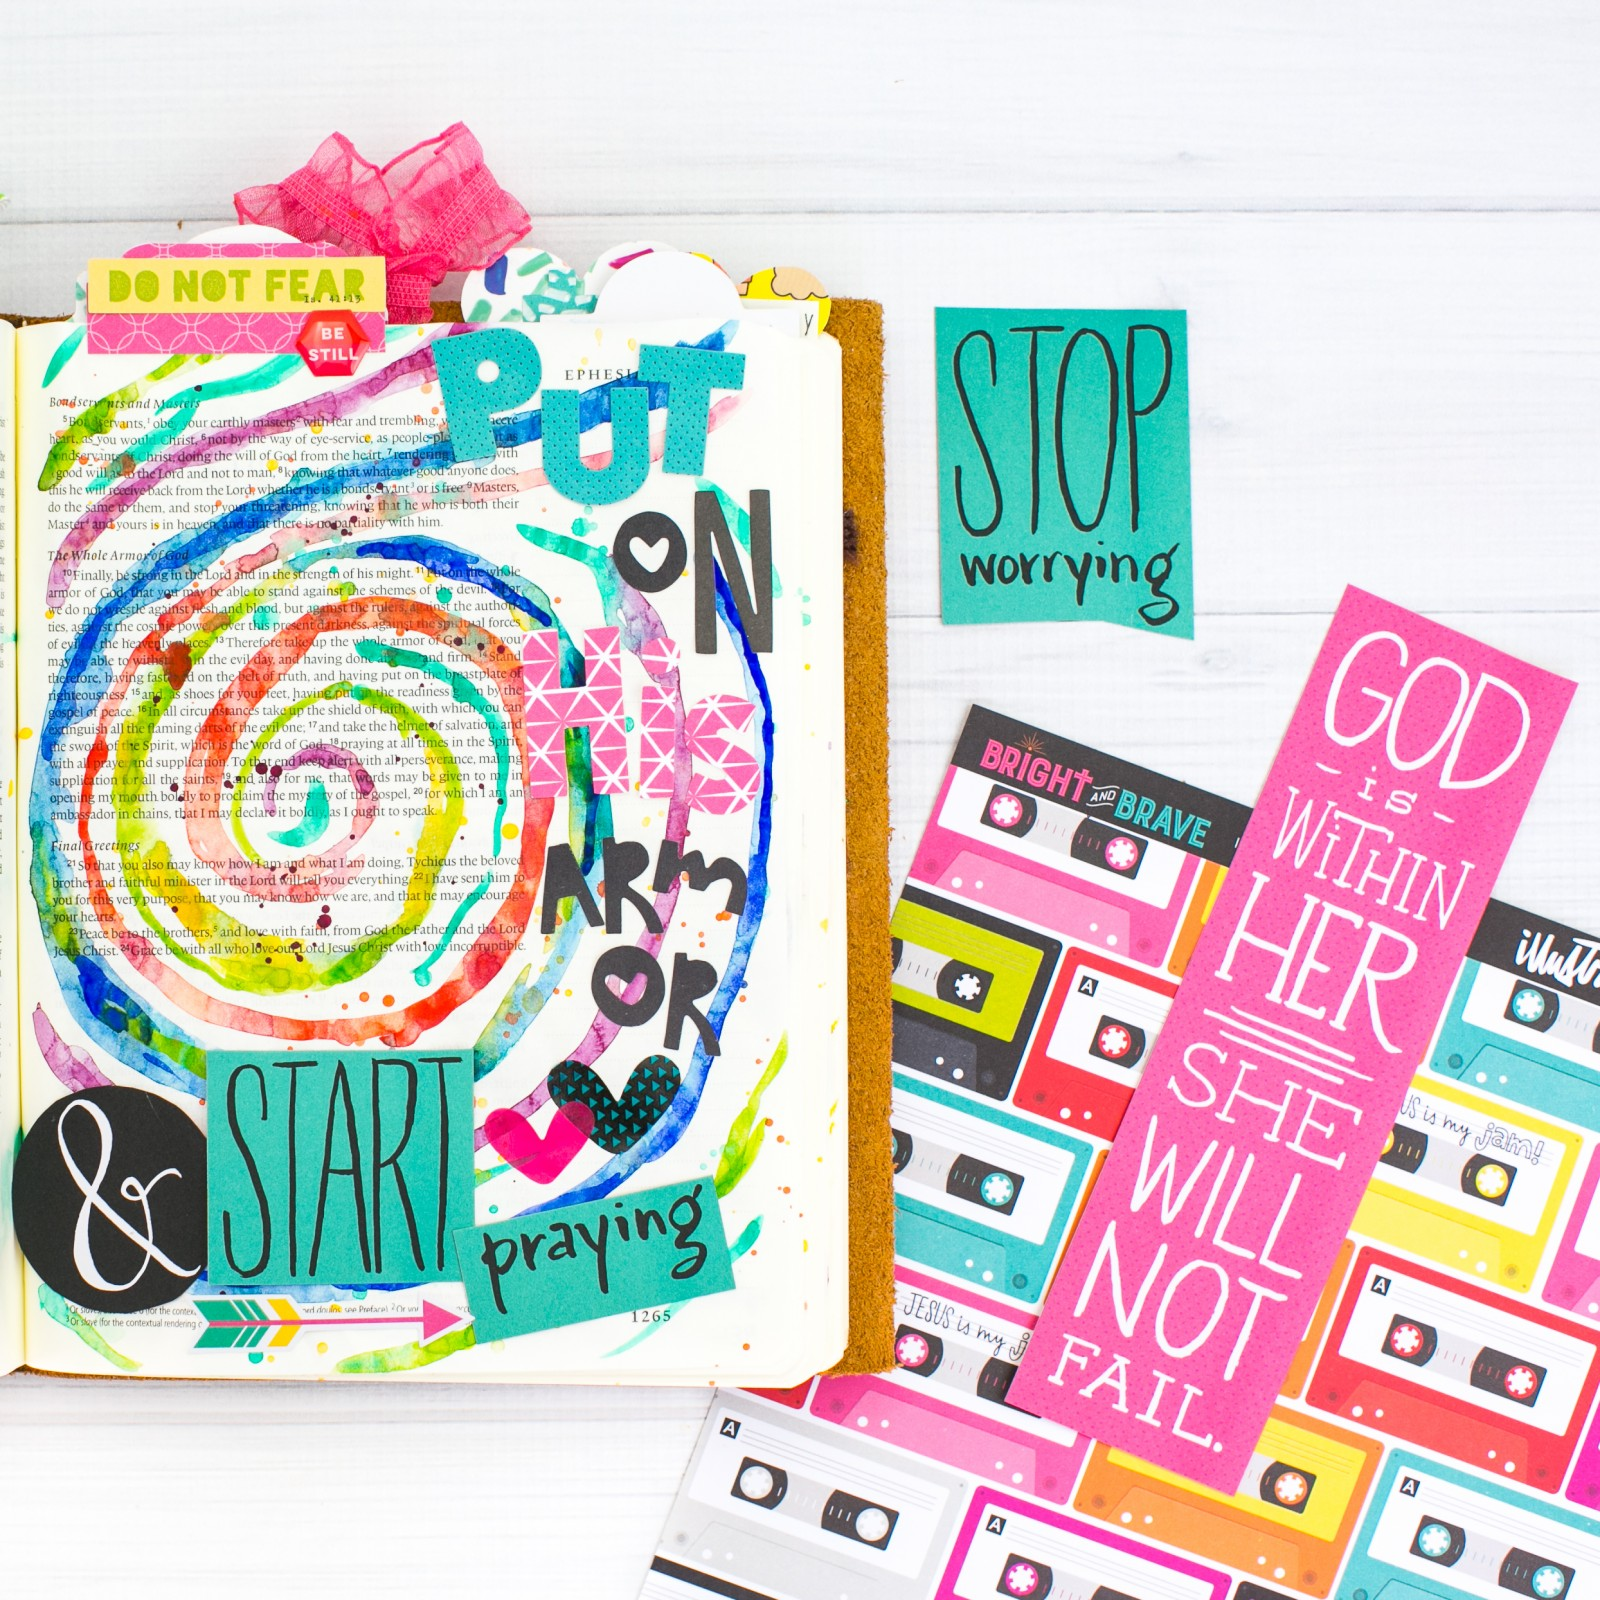 watercolor Bible journaling tutorial by Amy Bruce | Watercolor Tutorial | Leaning In - The Armor of God | Ephesians 6 | Illustrated Faith Bright & Brave